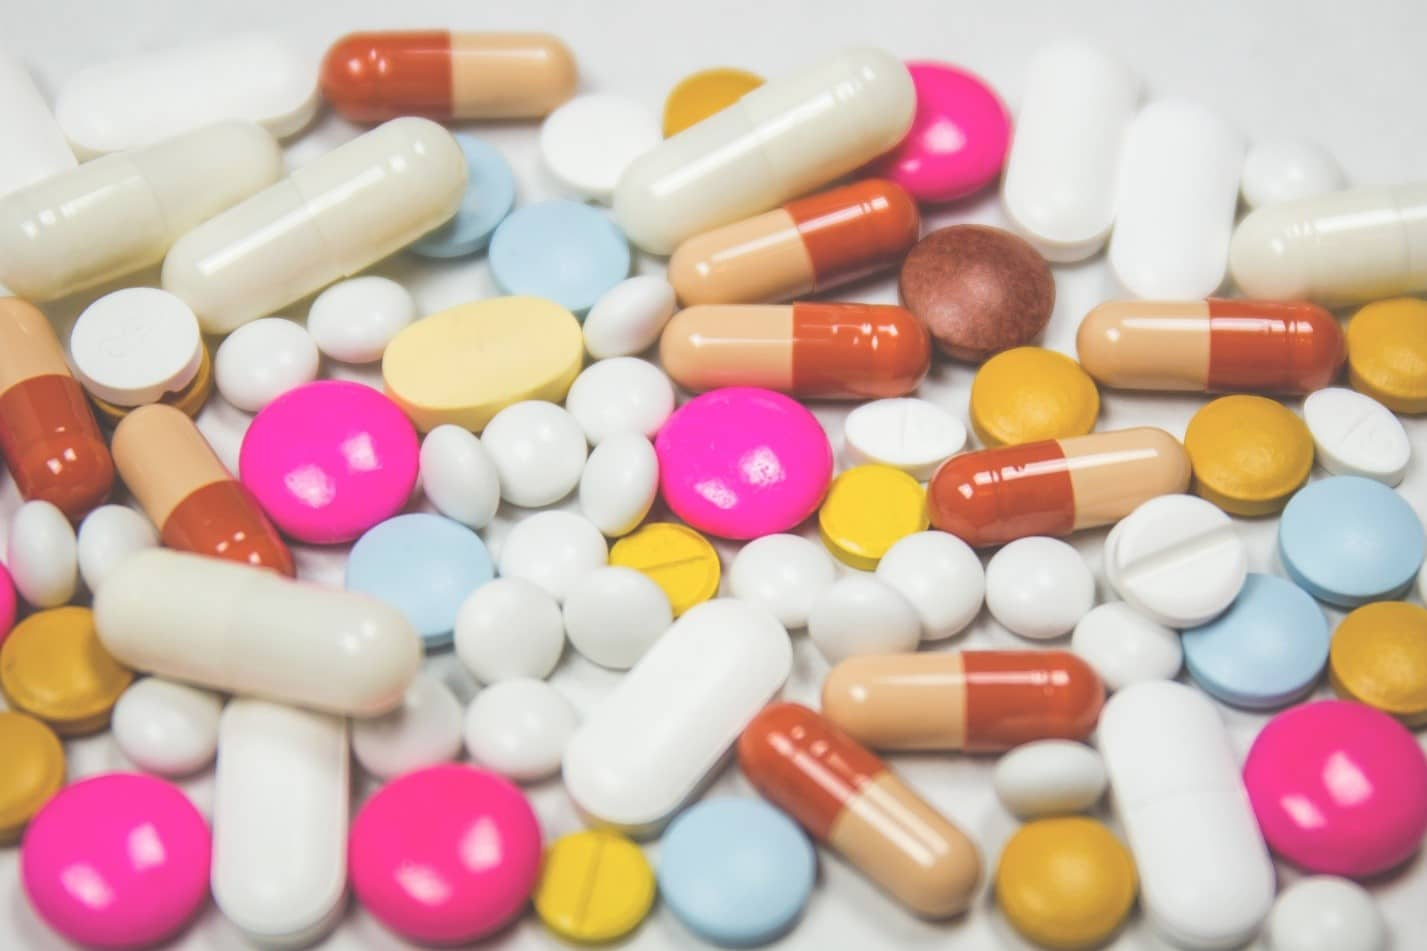 Many kinds of painkiller pills